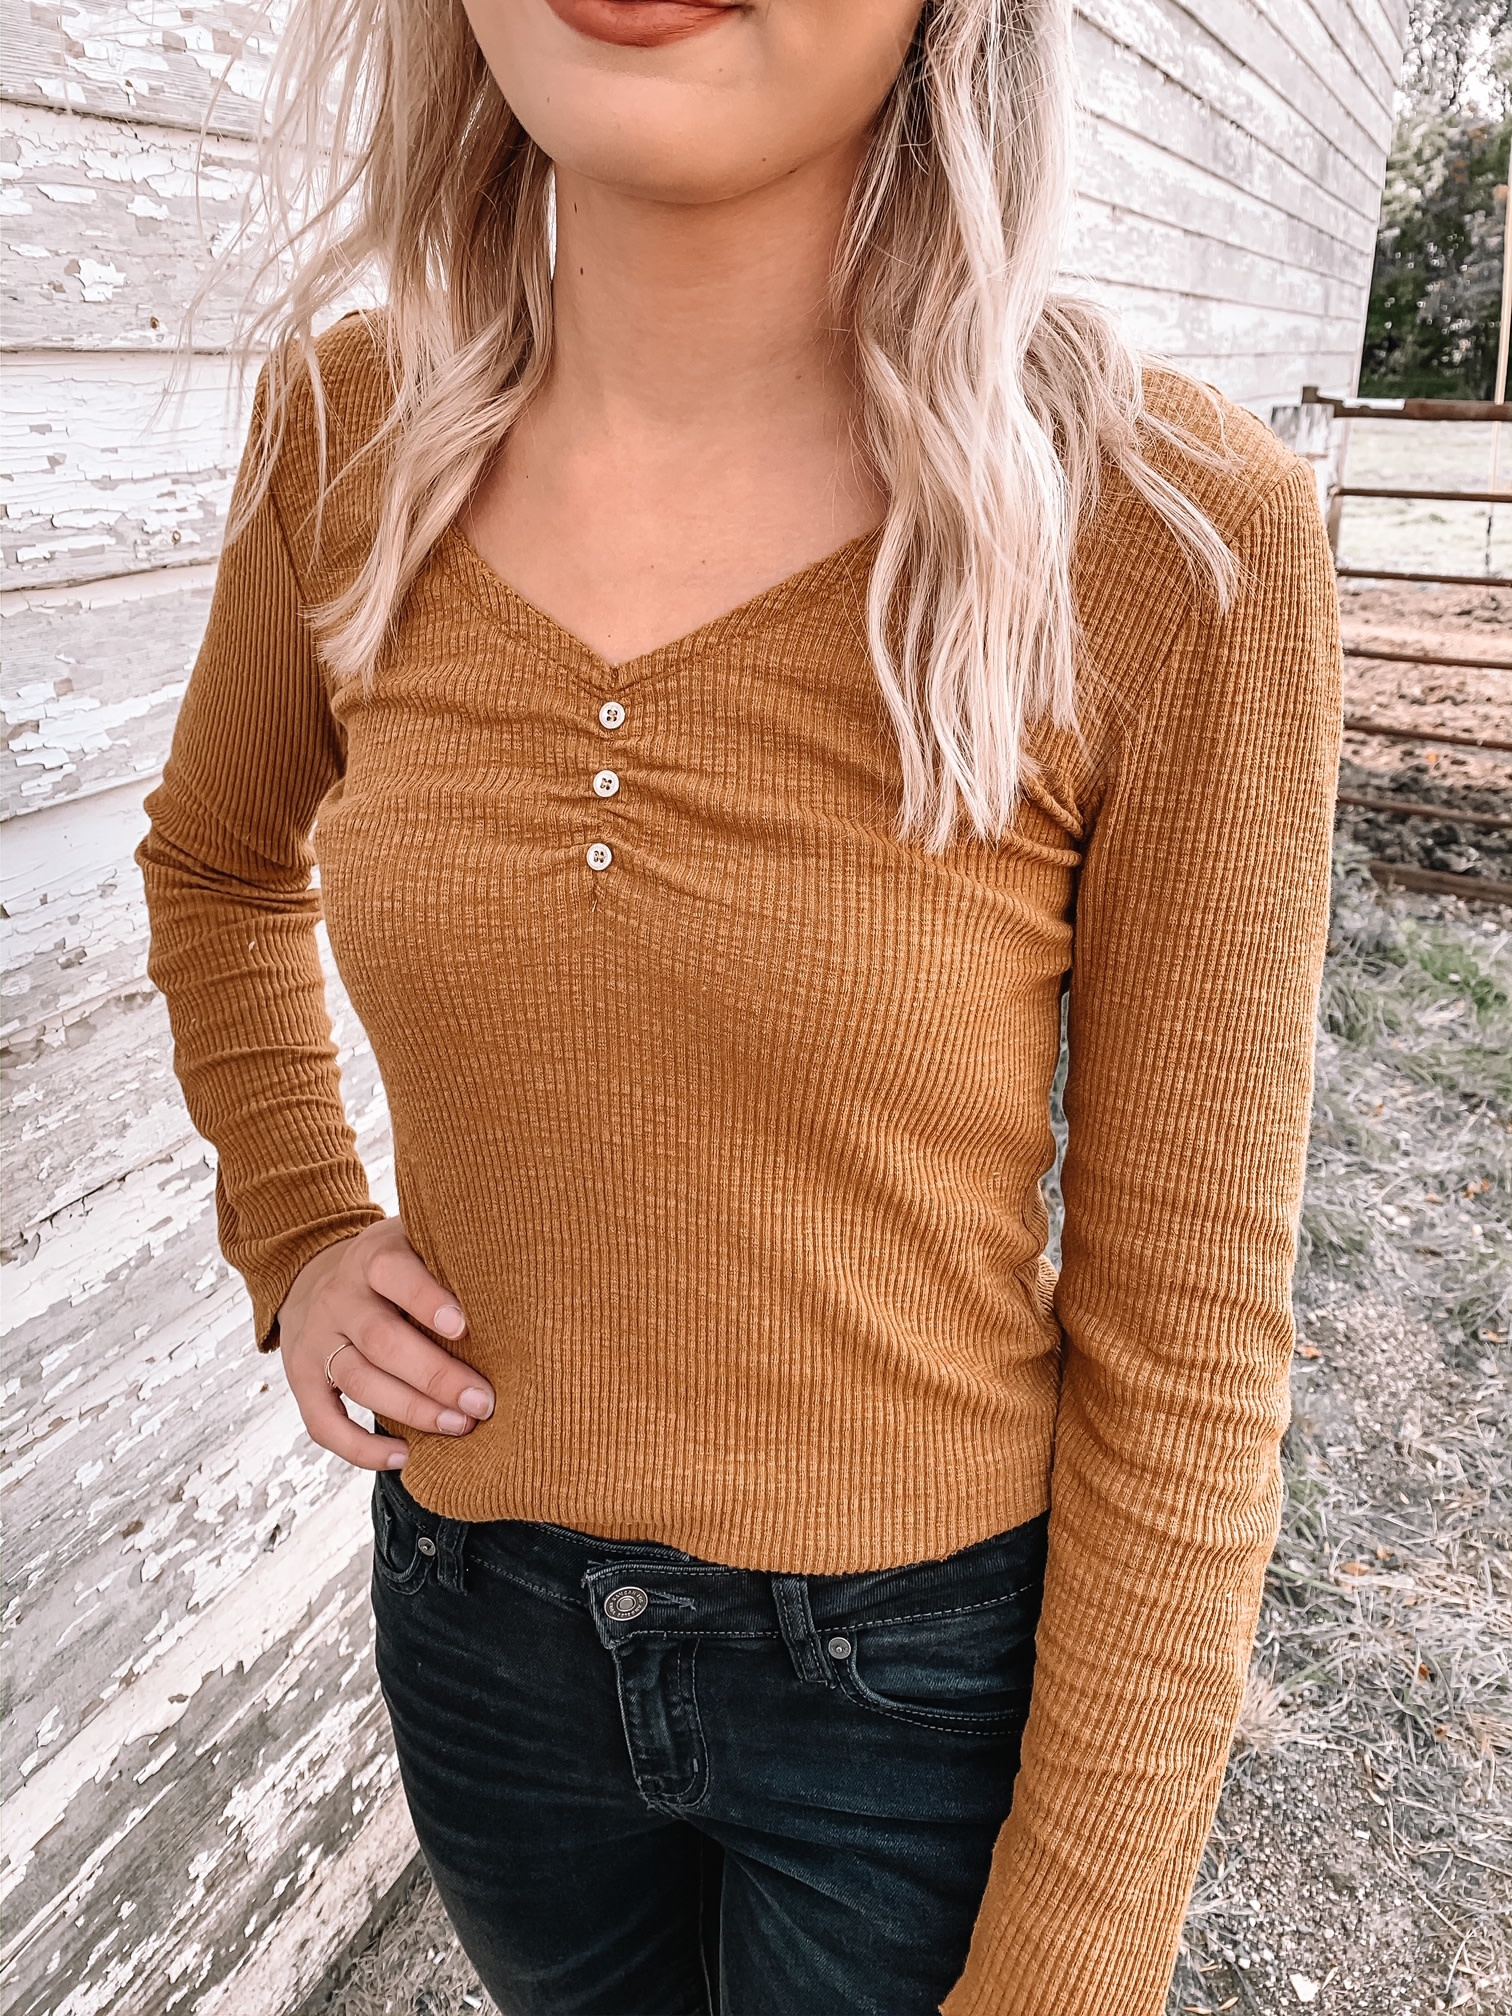 Layla Mustard Ribbed Top